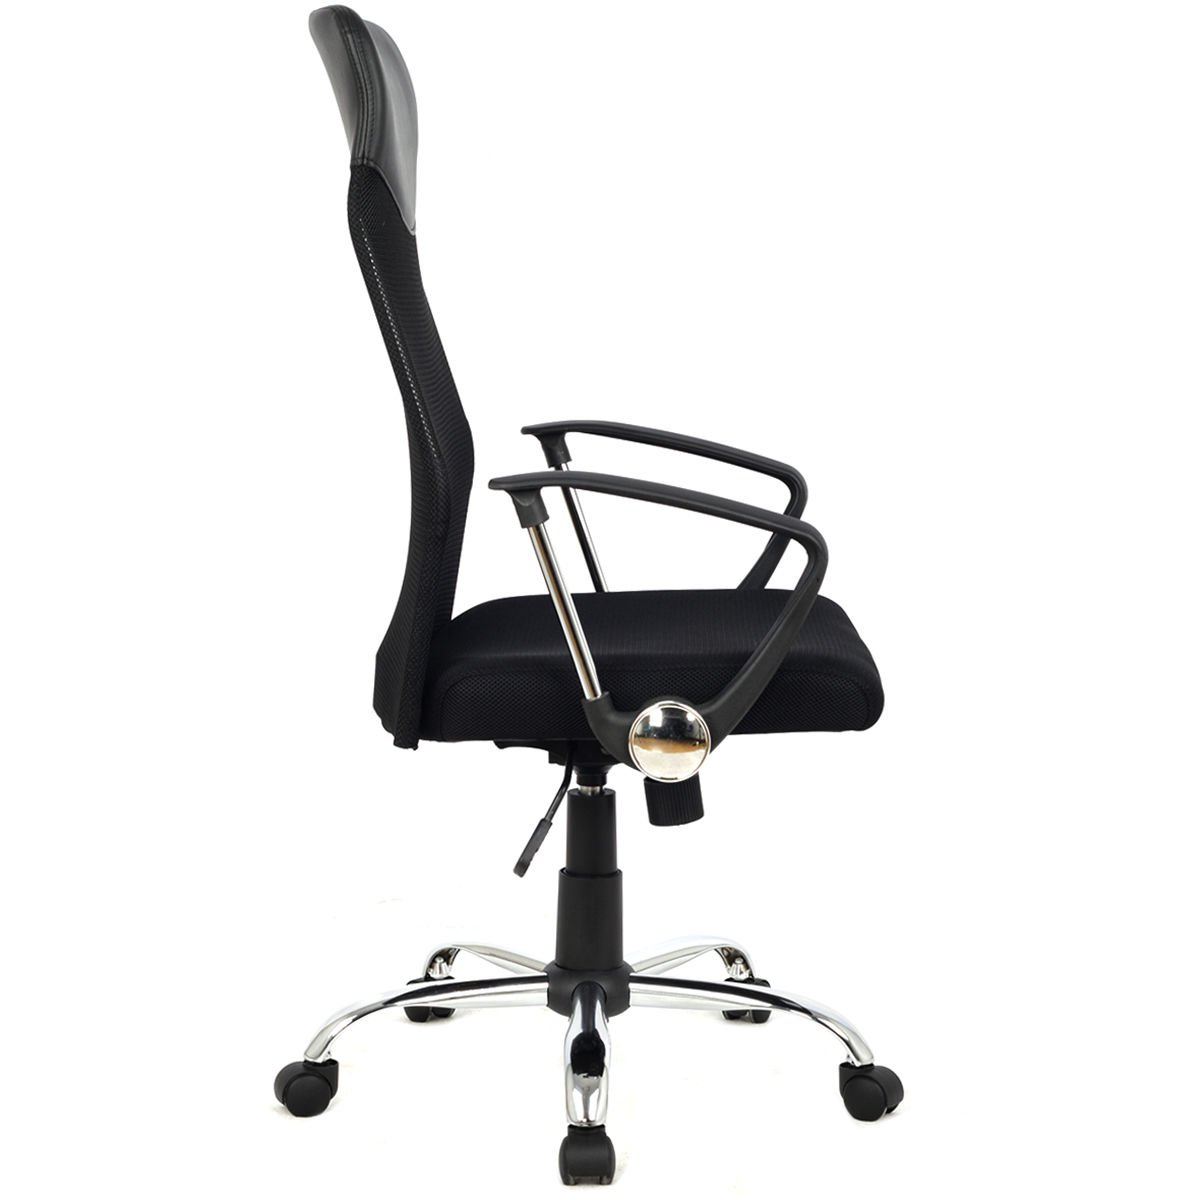 Modern Furniture 8074-BK High-Back Swivel Ergonomic Mesh/PVC Seat Desk Task Computer Swivel Lumbar Support Executive Office Chair with Seat Height Adjustment by mck (Image #3)